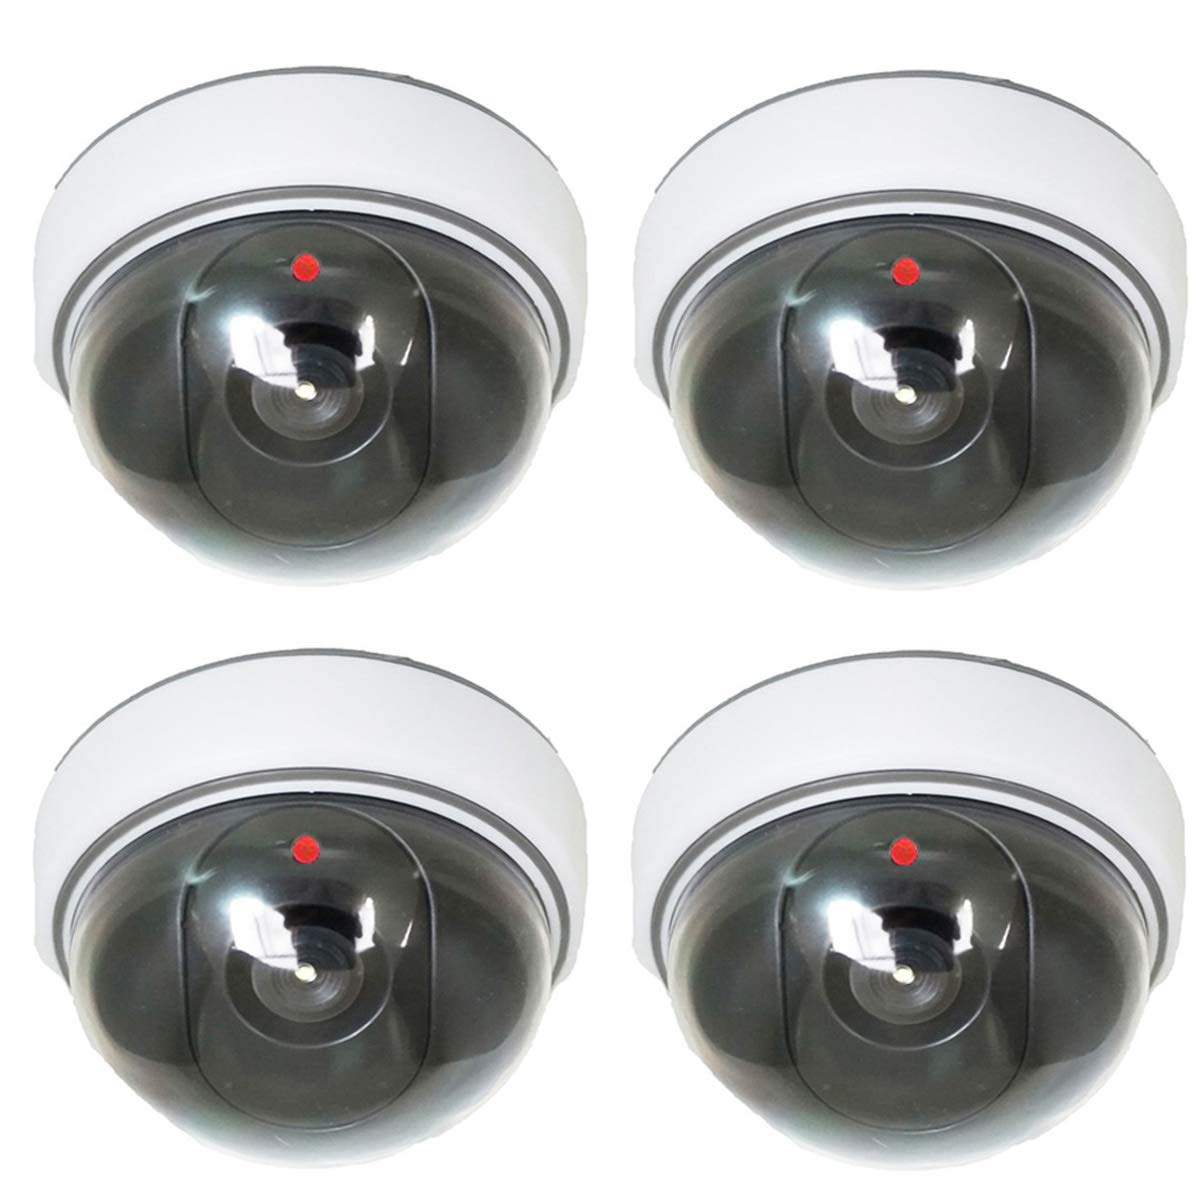 Dummy Dome Security Surveillance Camera - 4 Packs Fake Waterproof Outdoor Indoor Hemisphere Type Camera Equipment With Red Flashing LED Light(White) by ToThere